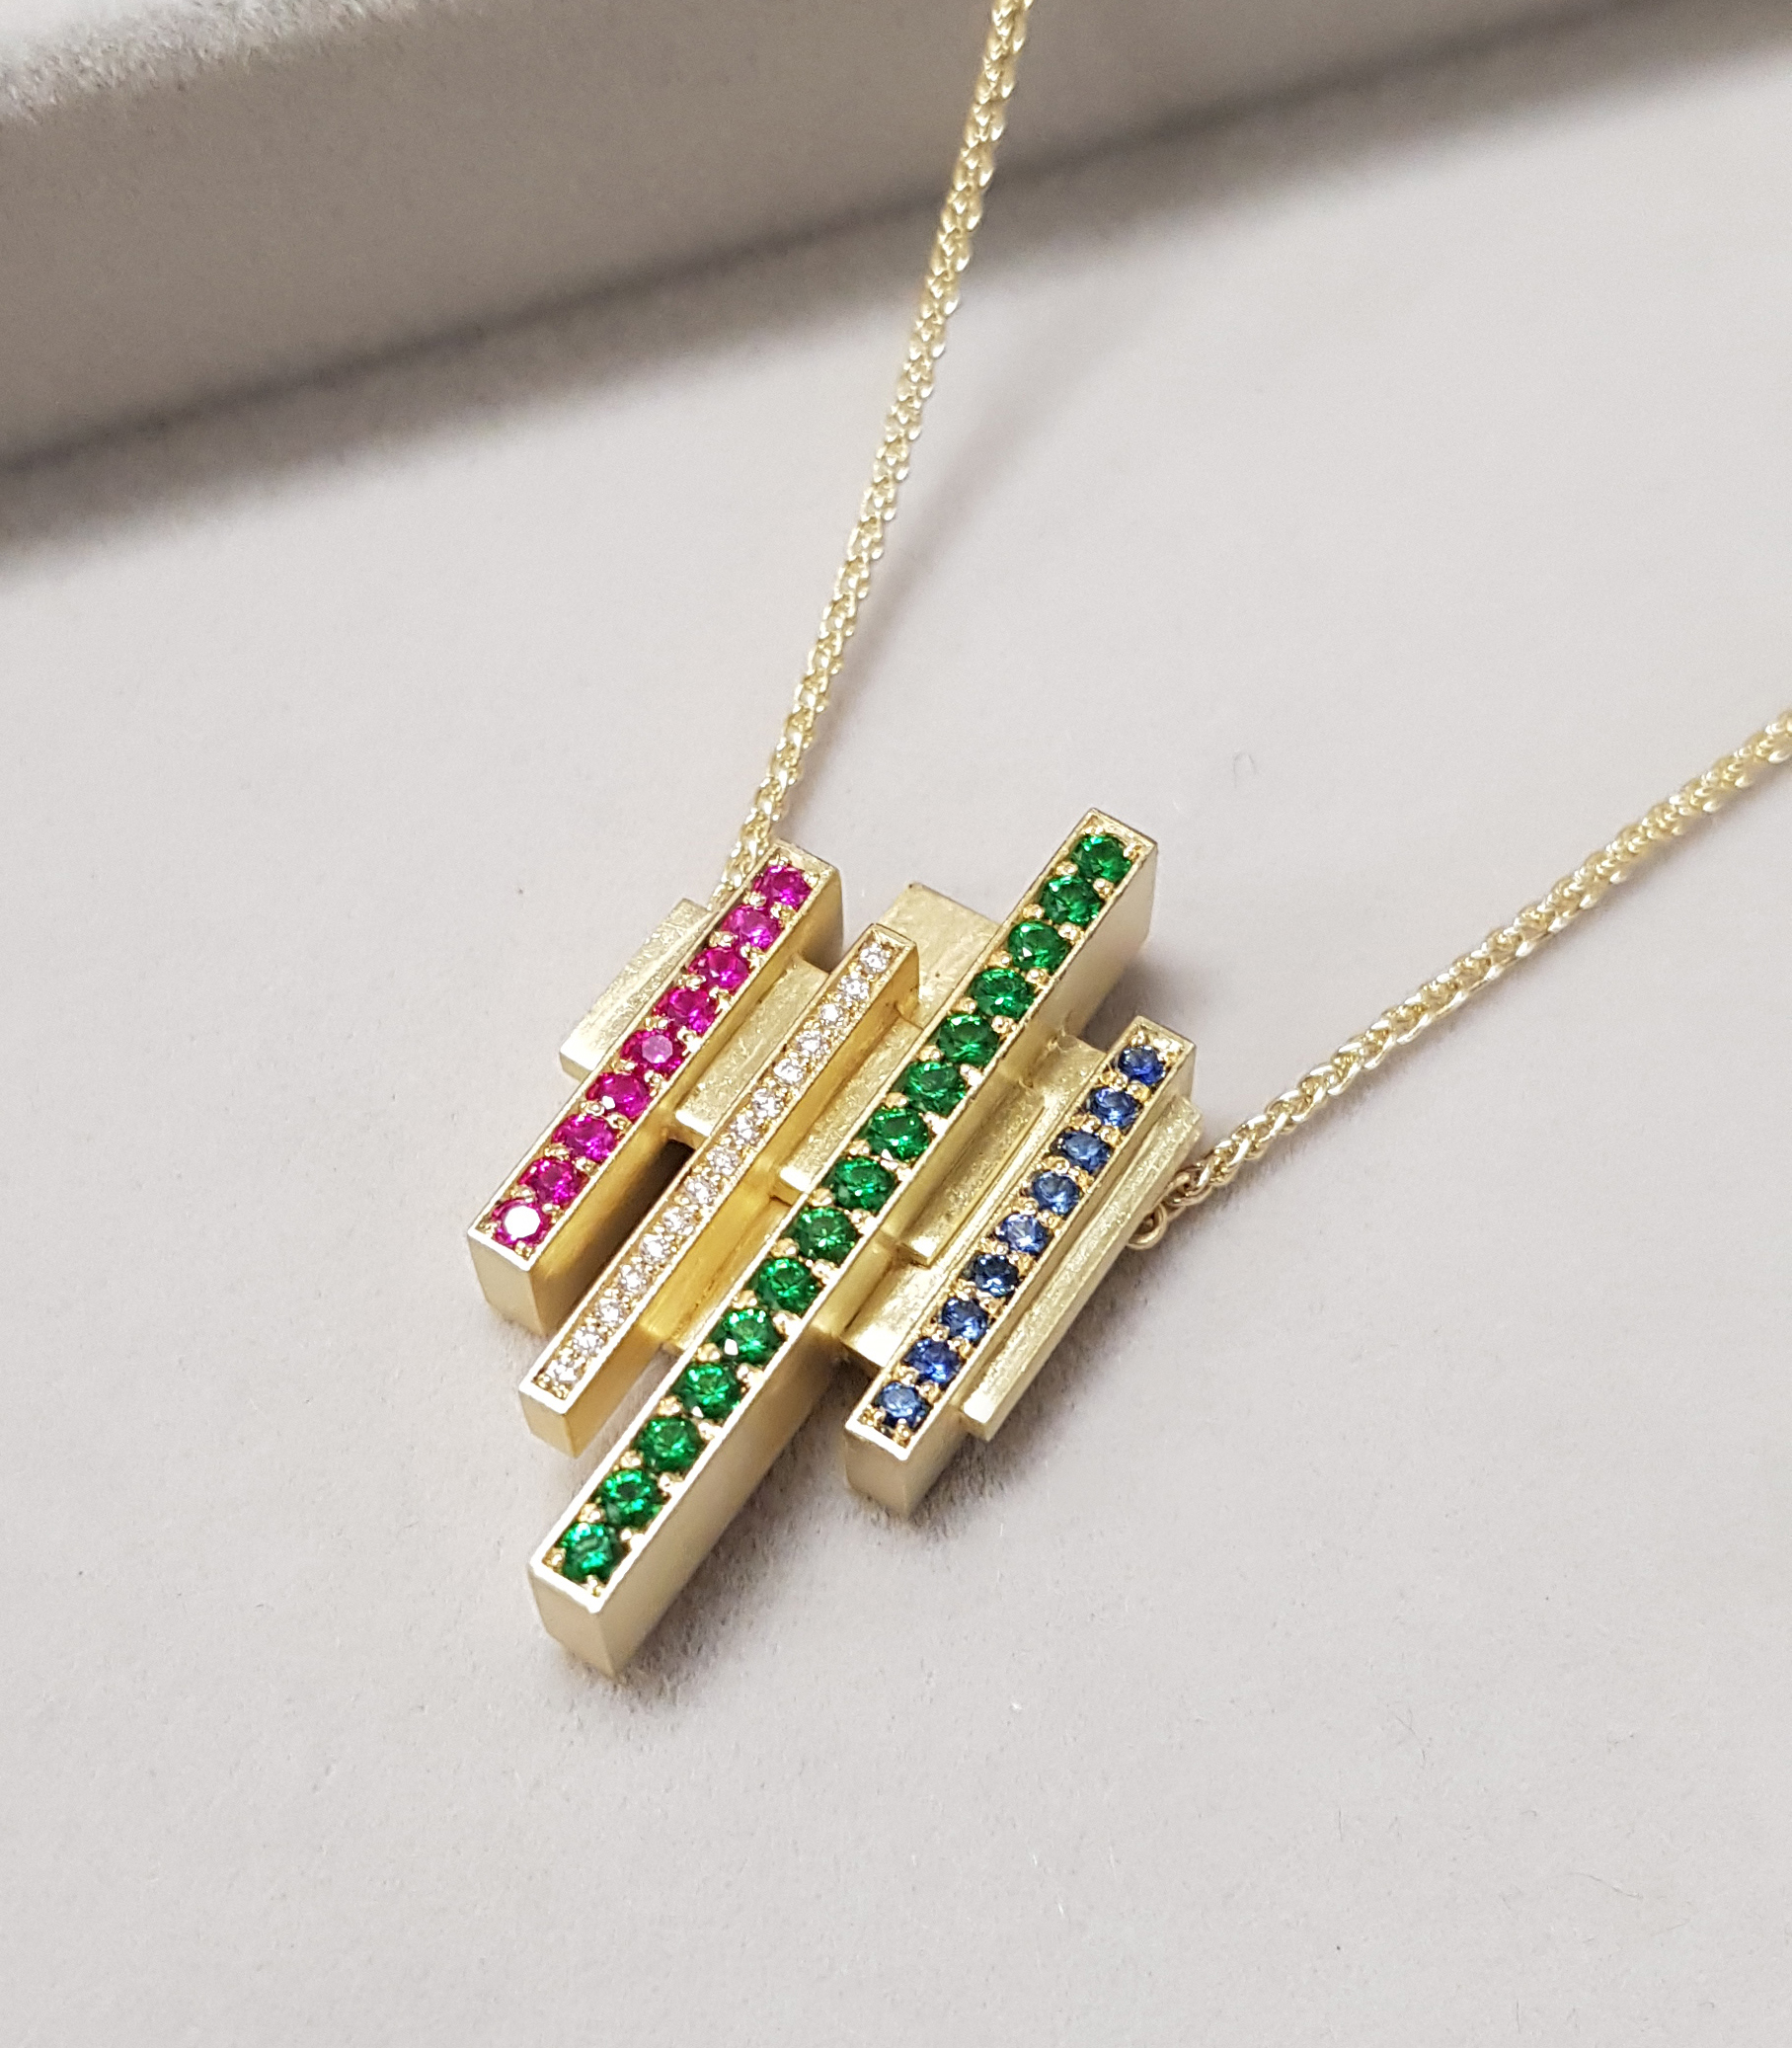 Yellow gold pendant on a spiga chain with diamonds, rubies, sapphires, and tsavorites on a grey background.